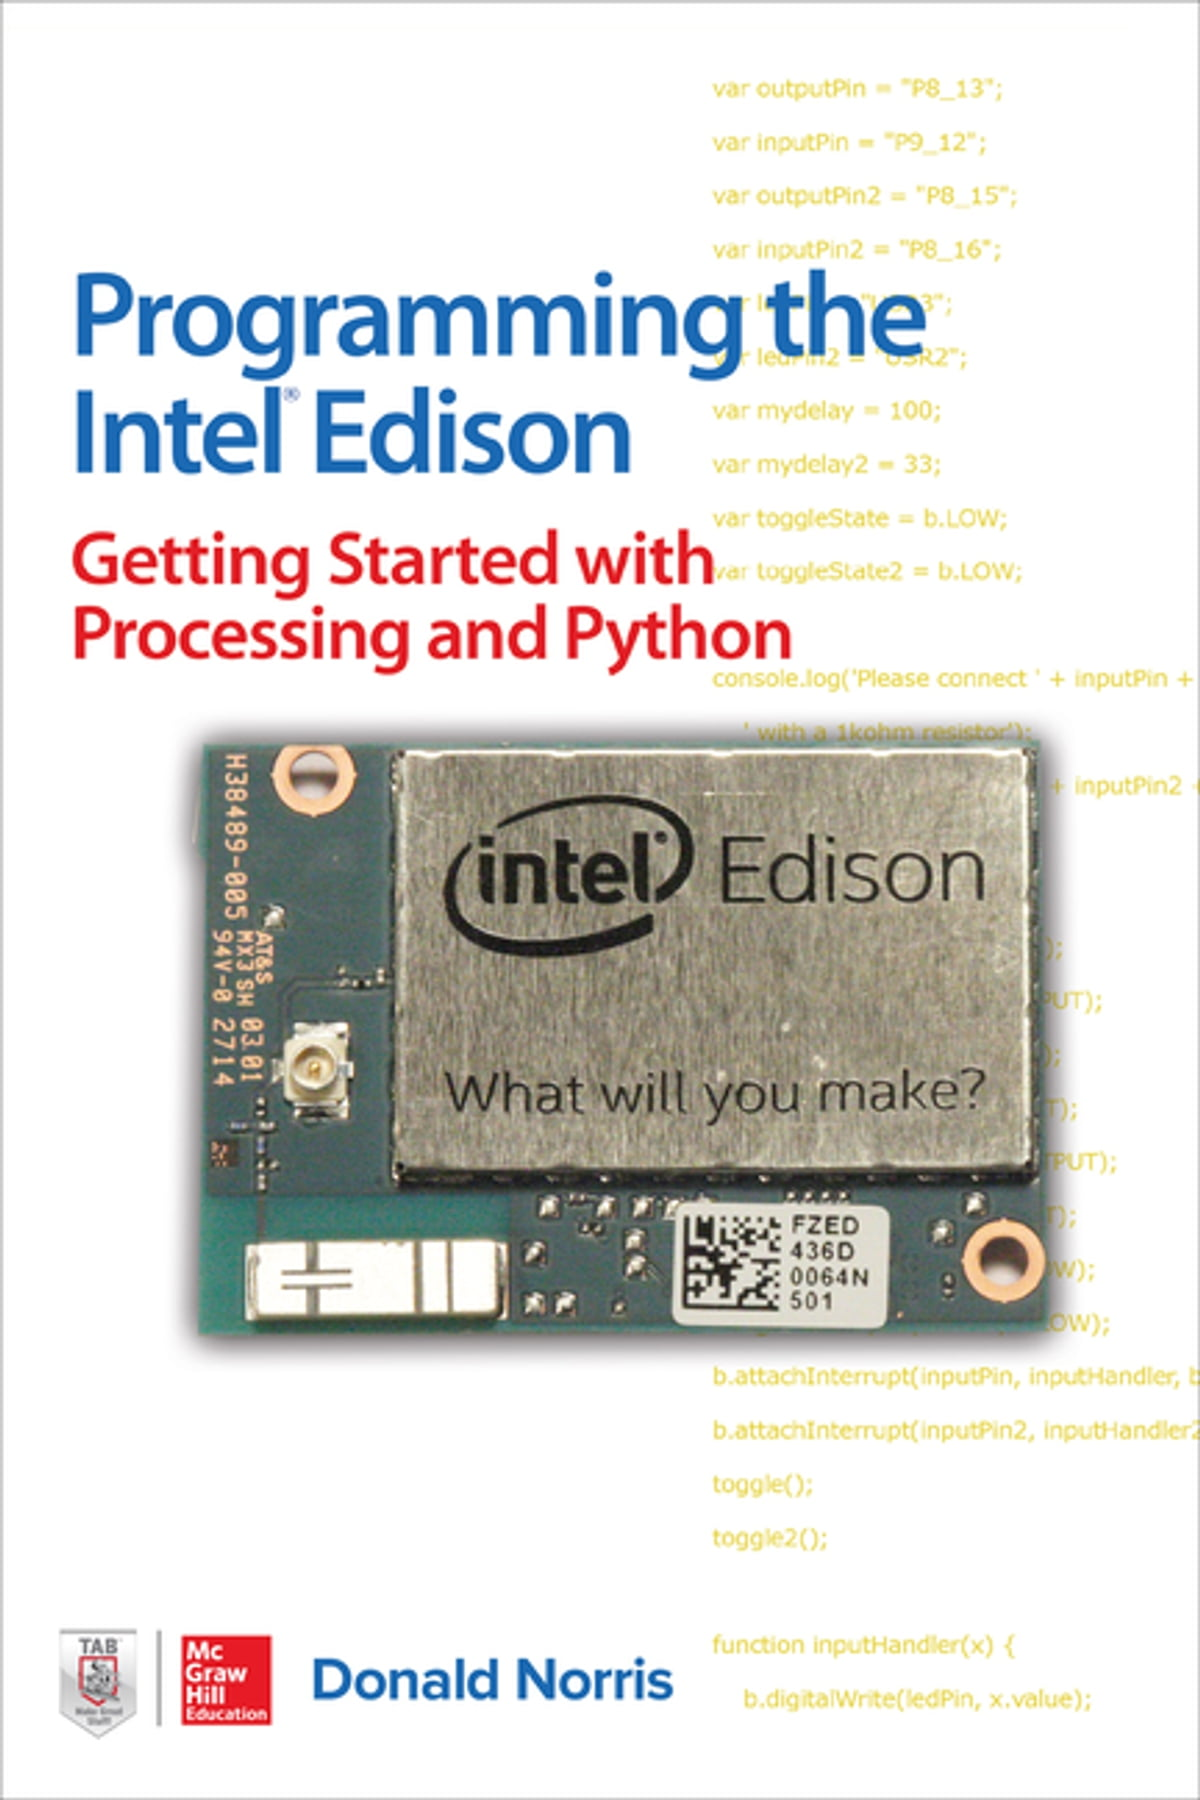 Programming the Intel Edison: Getting Started with Processing and Python  ebook by Donald Norris - Rakuten Kobo